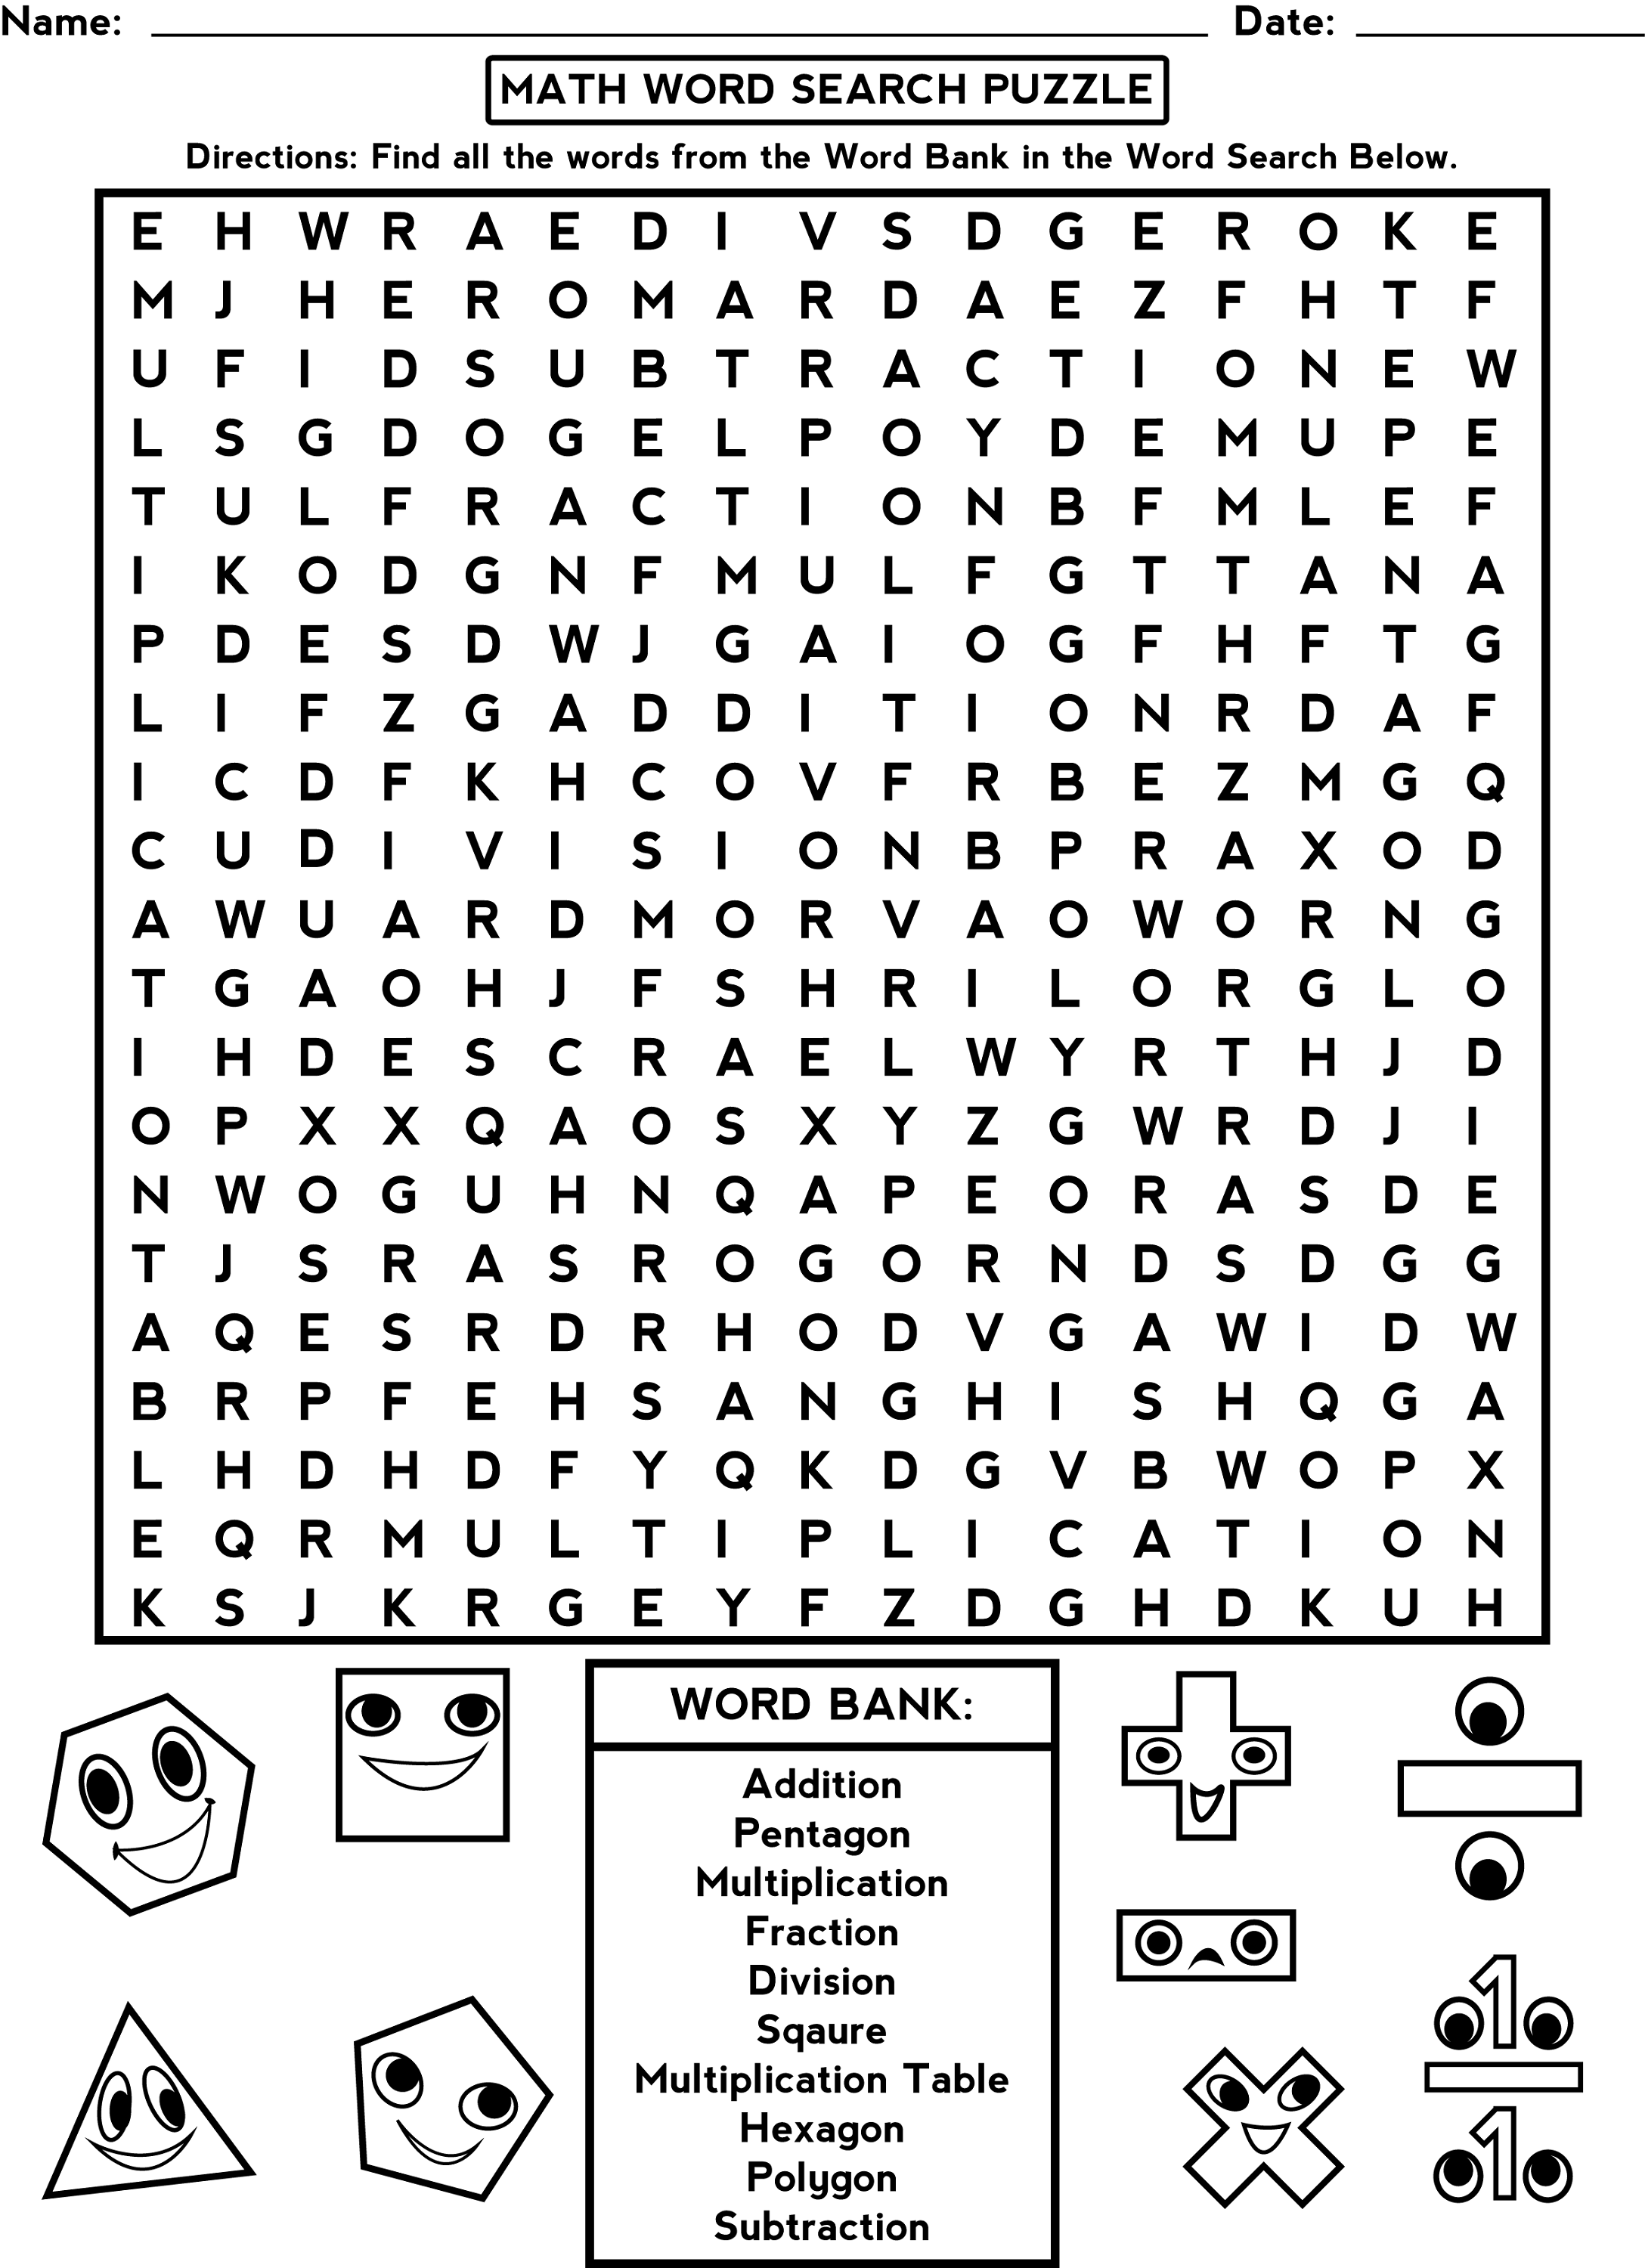 worksheet Fun Math Worksheets For Middle School word search worksheets for brain activity shelter worksheet math puzzle middle school varietycar with 53 related worksheets